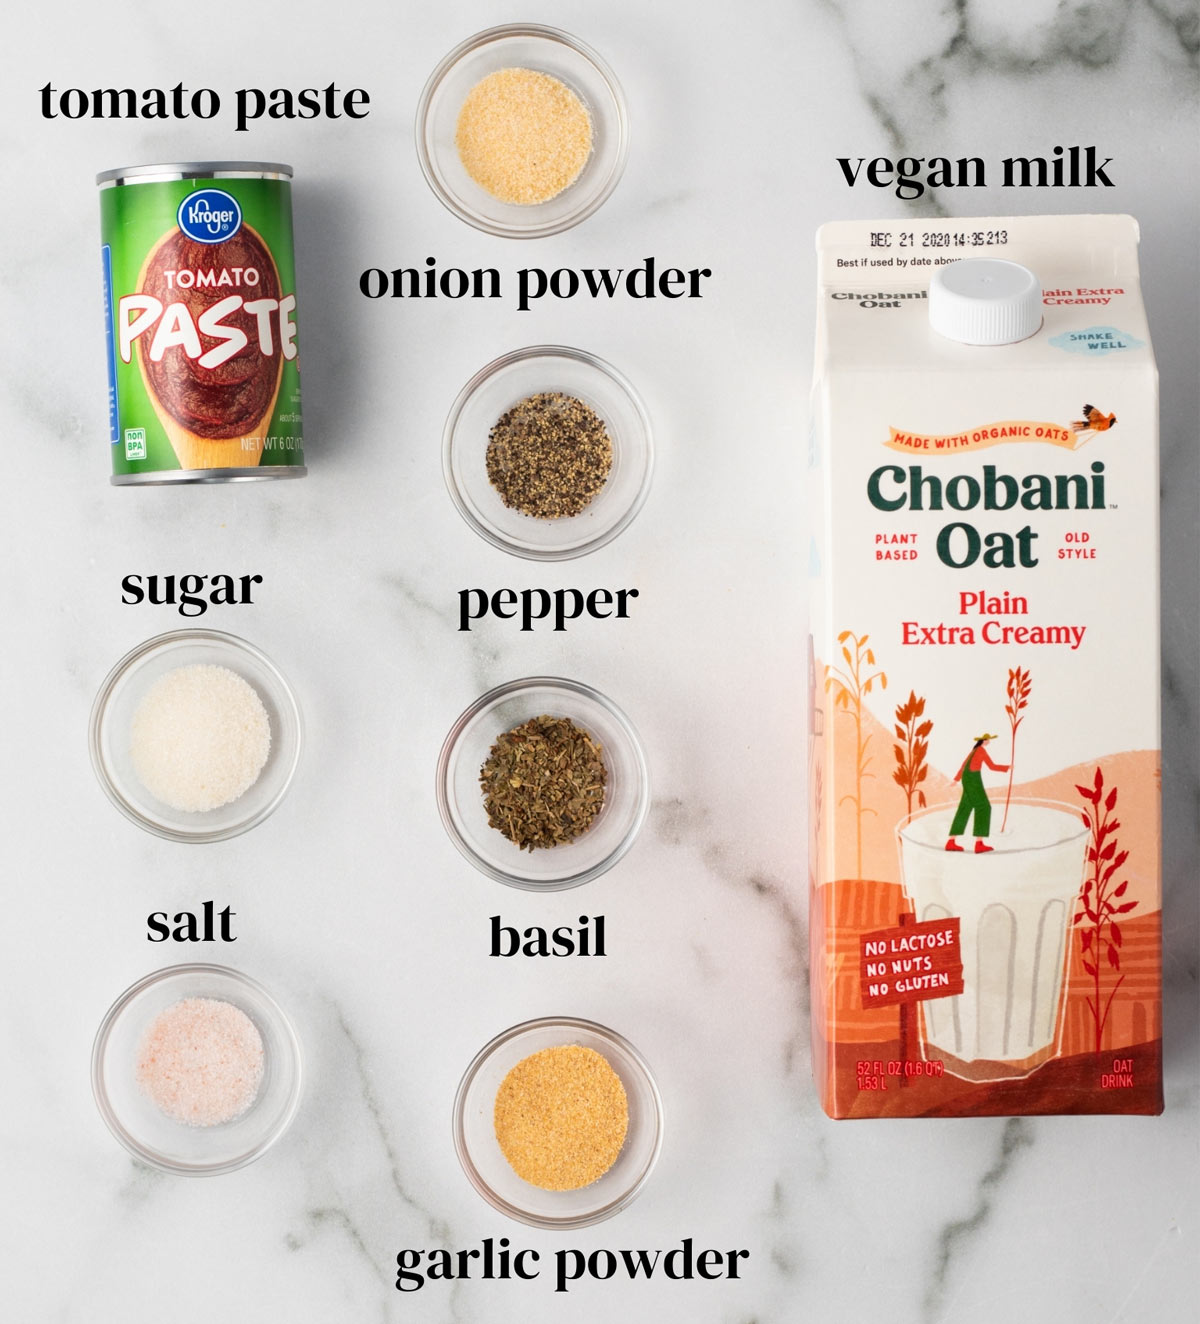 Ingredients for vegan tomato soup: Tomato paste, oat milk, and seasonings.